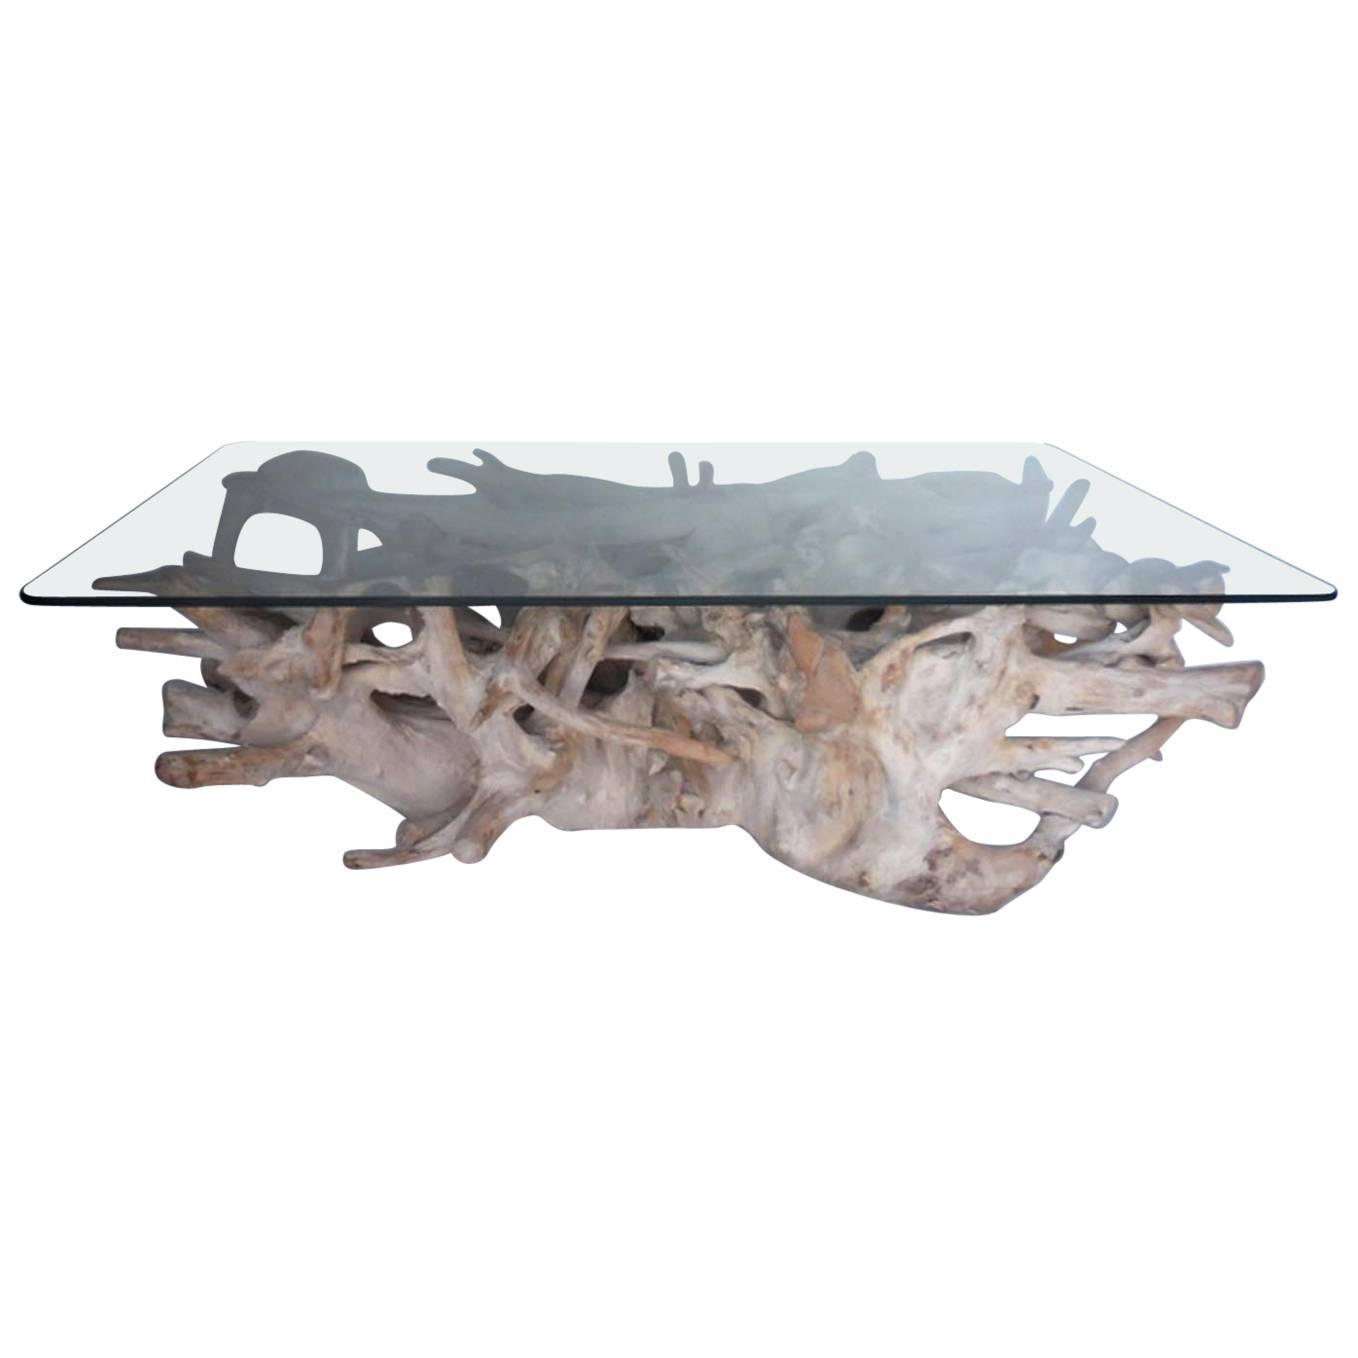 3503819219a5d Sculptural Teak Root Coffee Table with Glass Top at 1stdibs